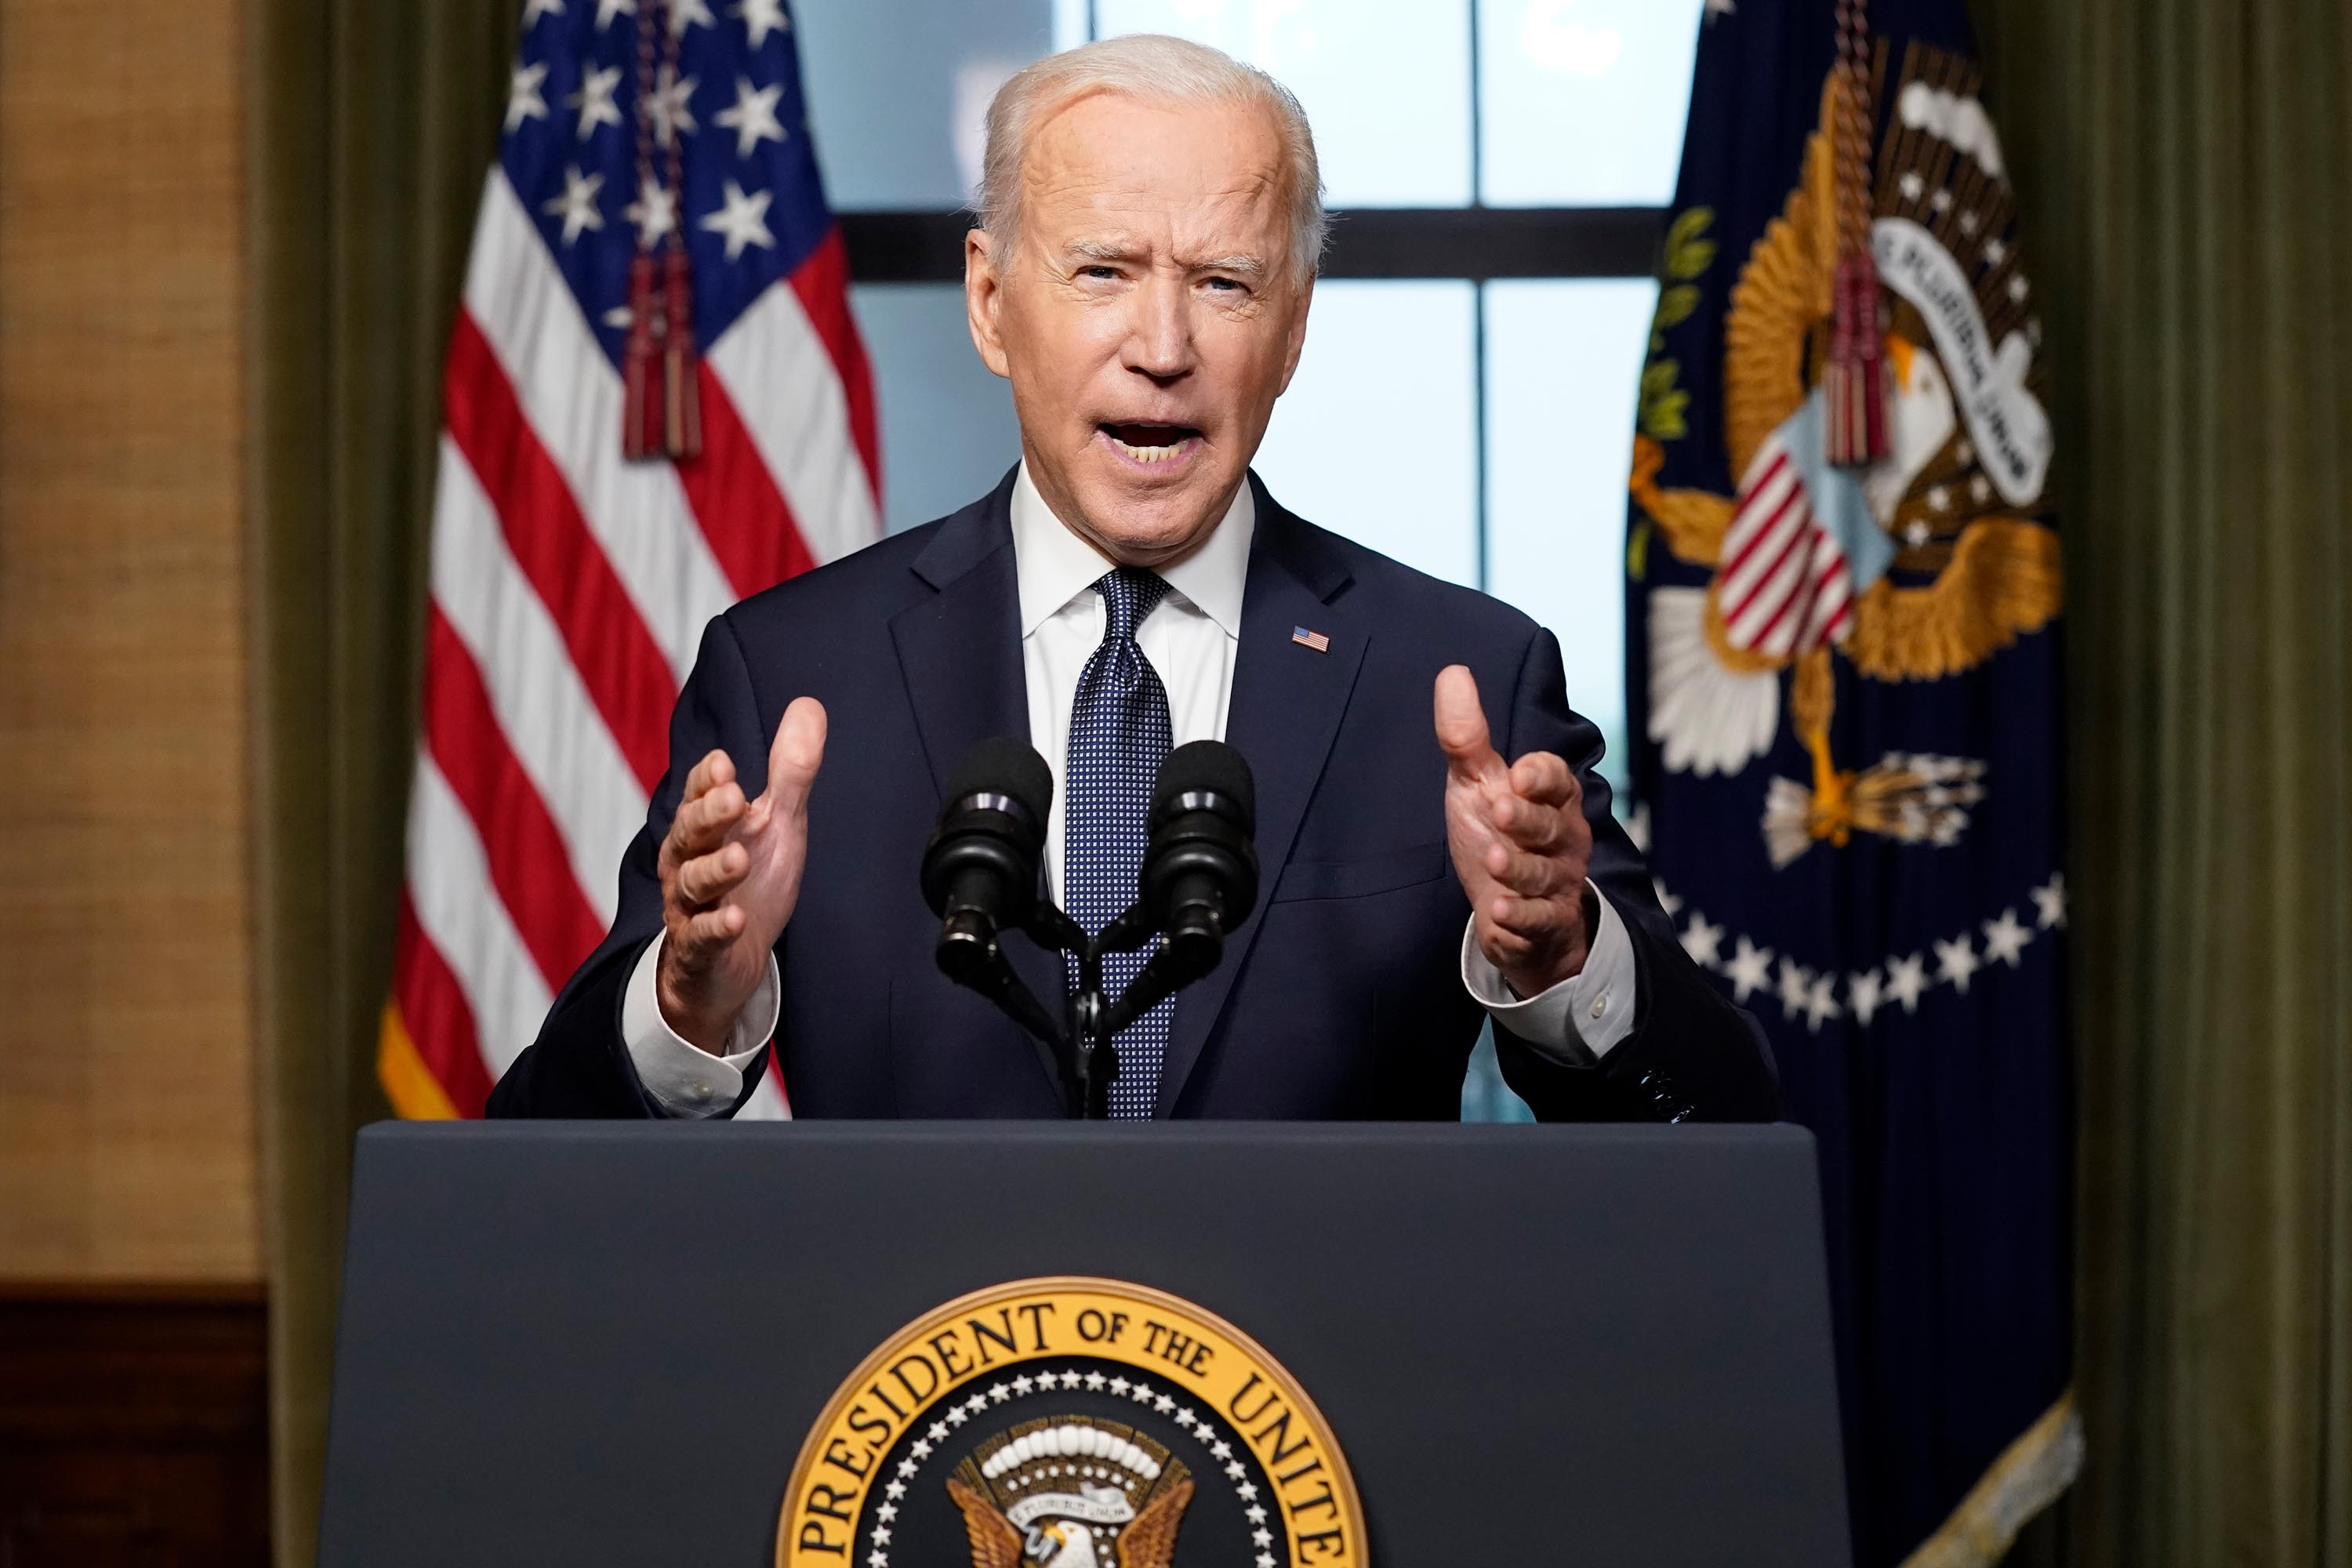 Biden puts his stamp on foreign policy with series of momentous decisions